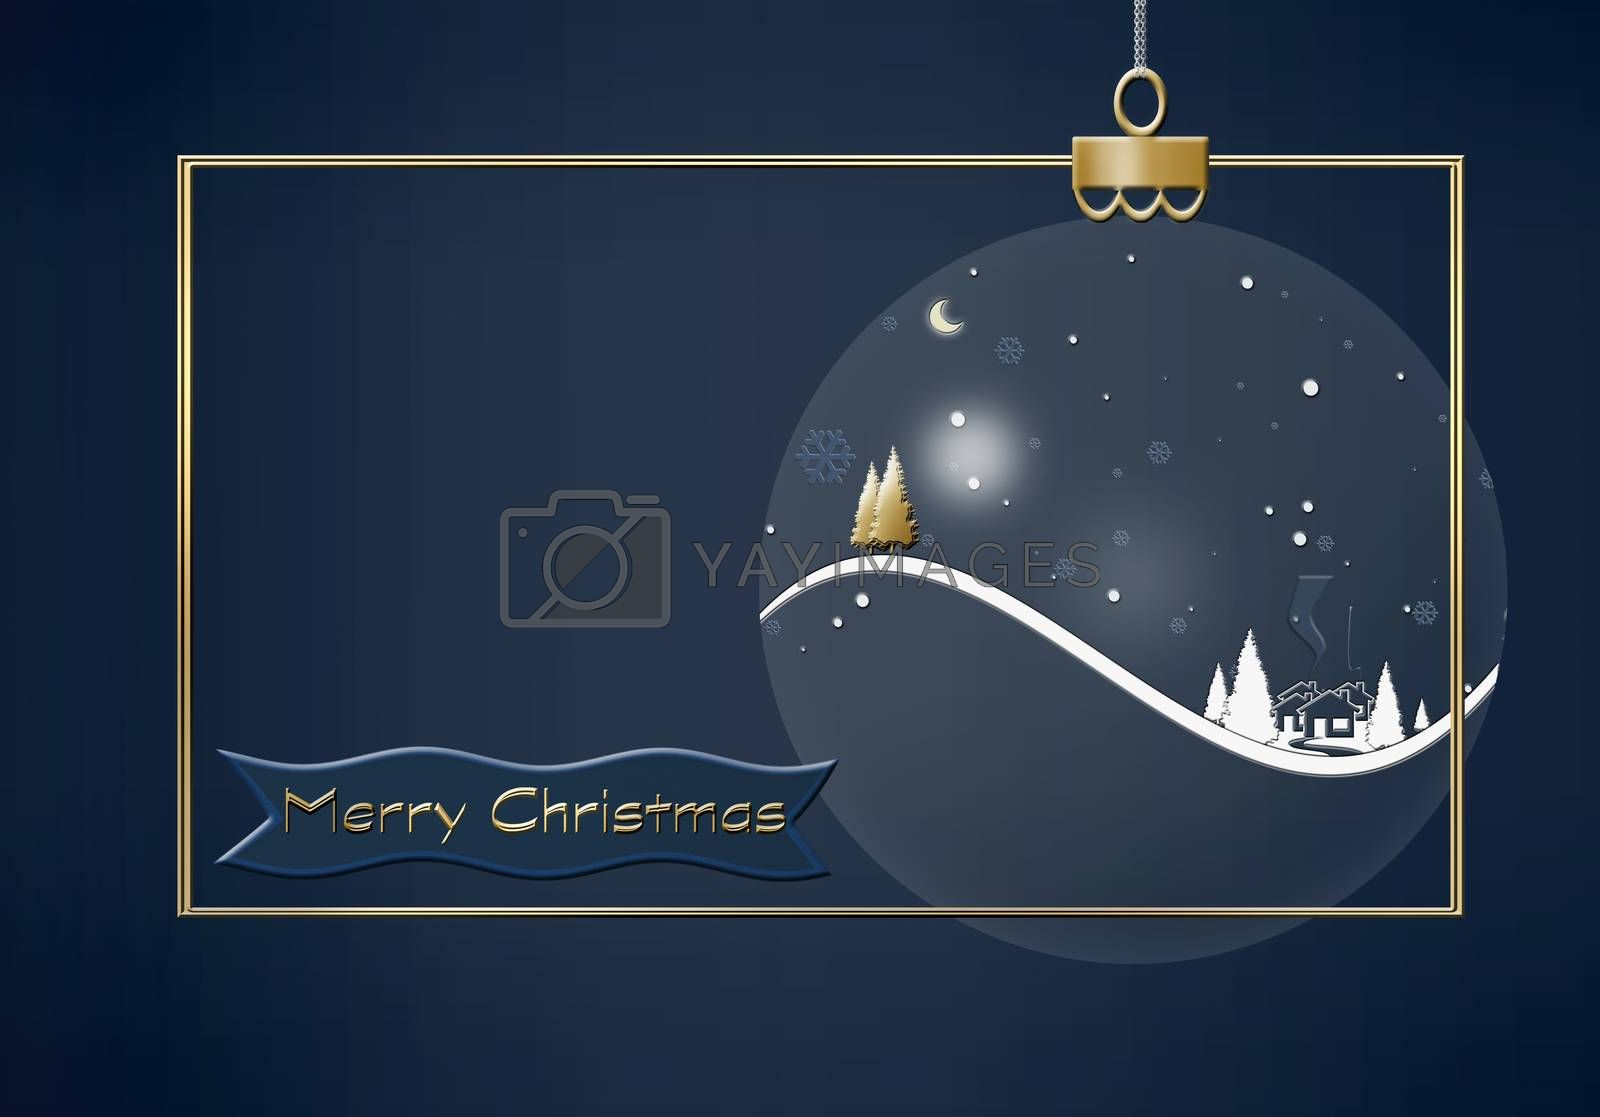 Hanging Christmas ball made of winter night landscape with snowflakes, houses, firs, gold Christmas tree on dark blue background. Greeting 2021 New Year card. Text Merry Christmas. 3D illustration